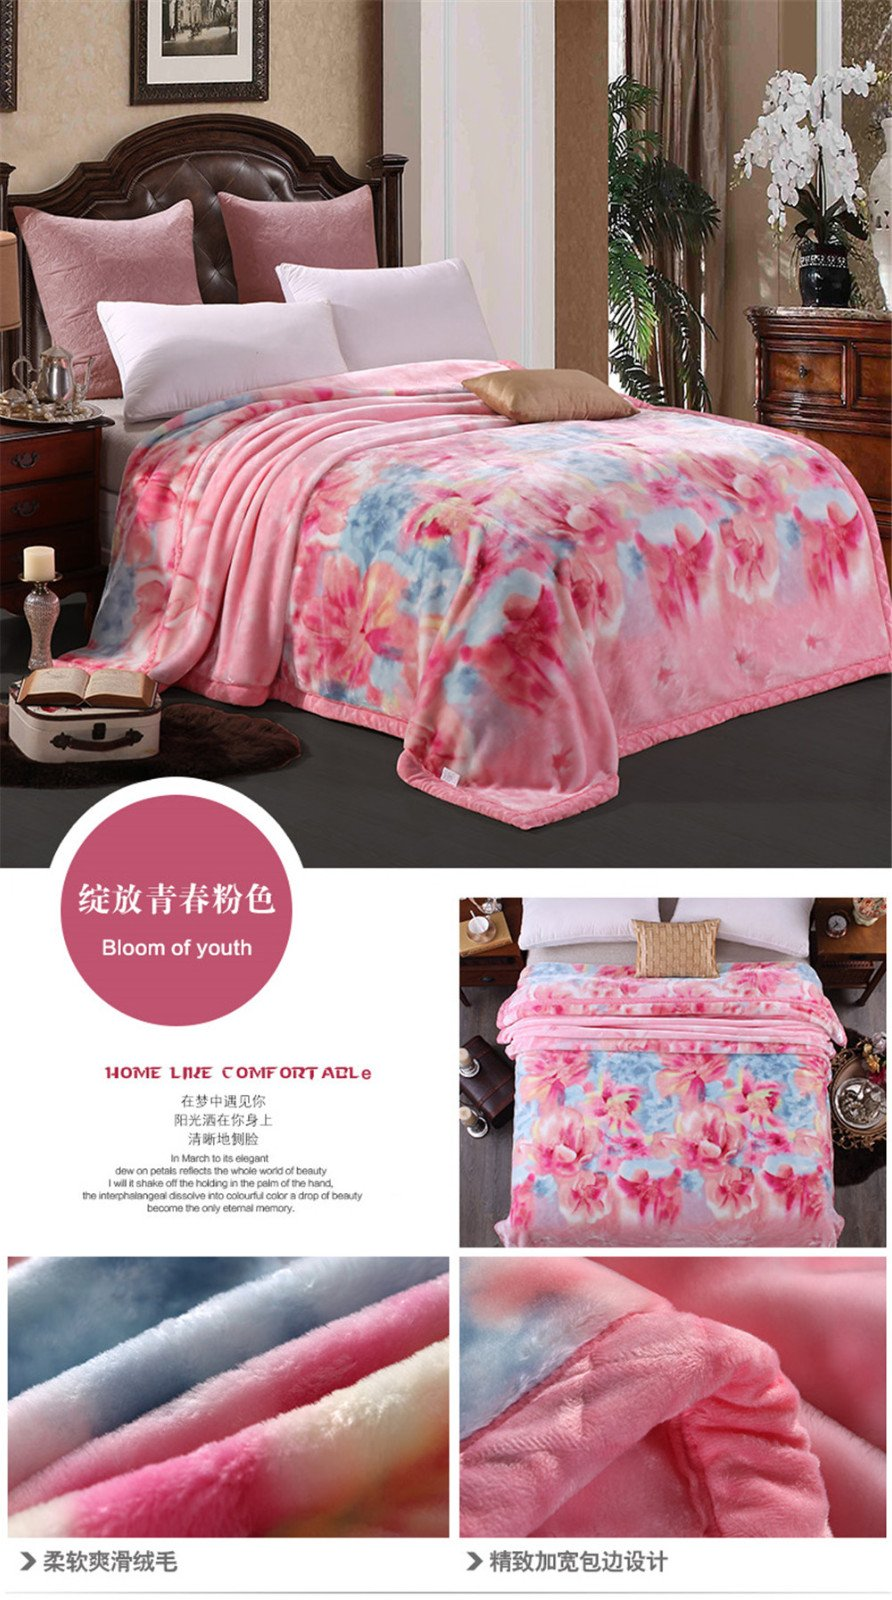 Bedding Double thick warm winter quilt raschel sheets coral fleece blanket,200 x 230/6.6 Pounds,Blooming youthful pink Parents Holiday Christmas Gifts